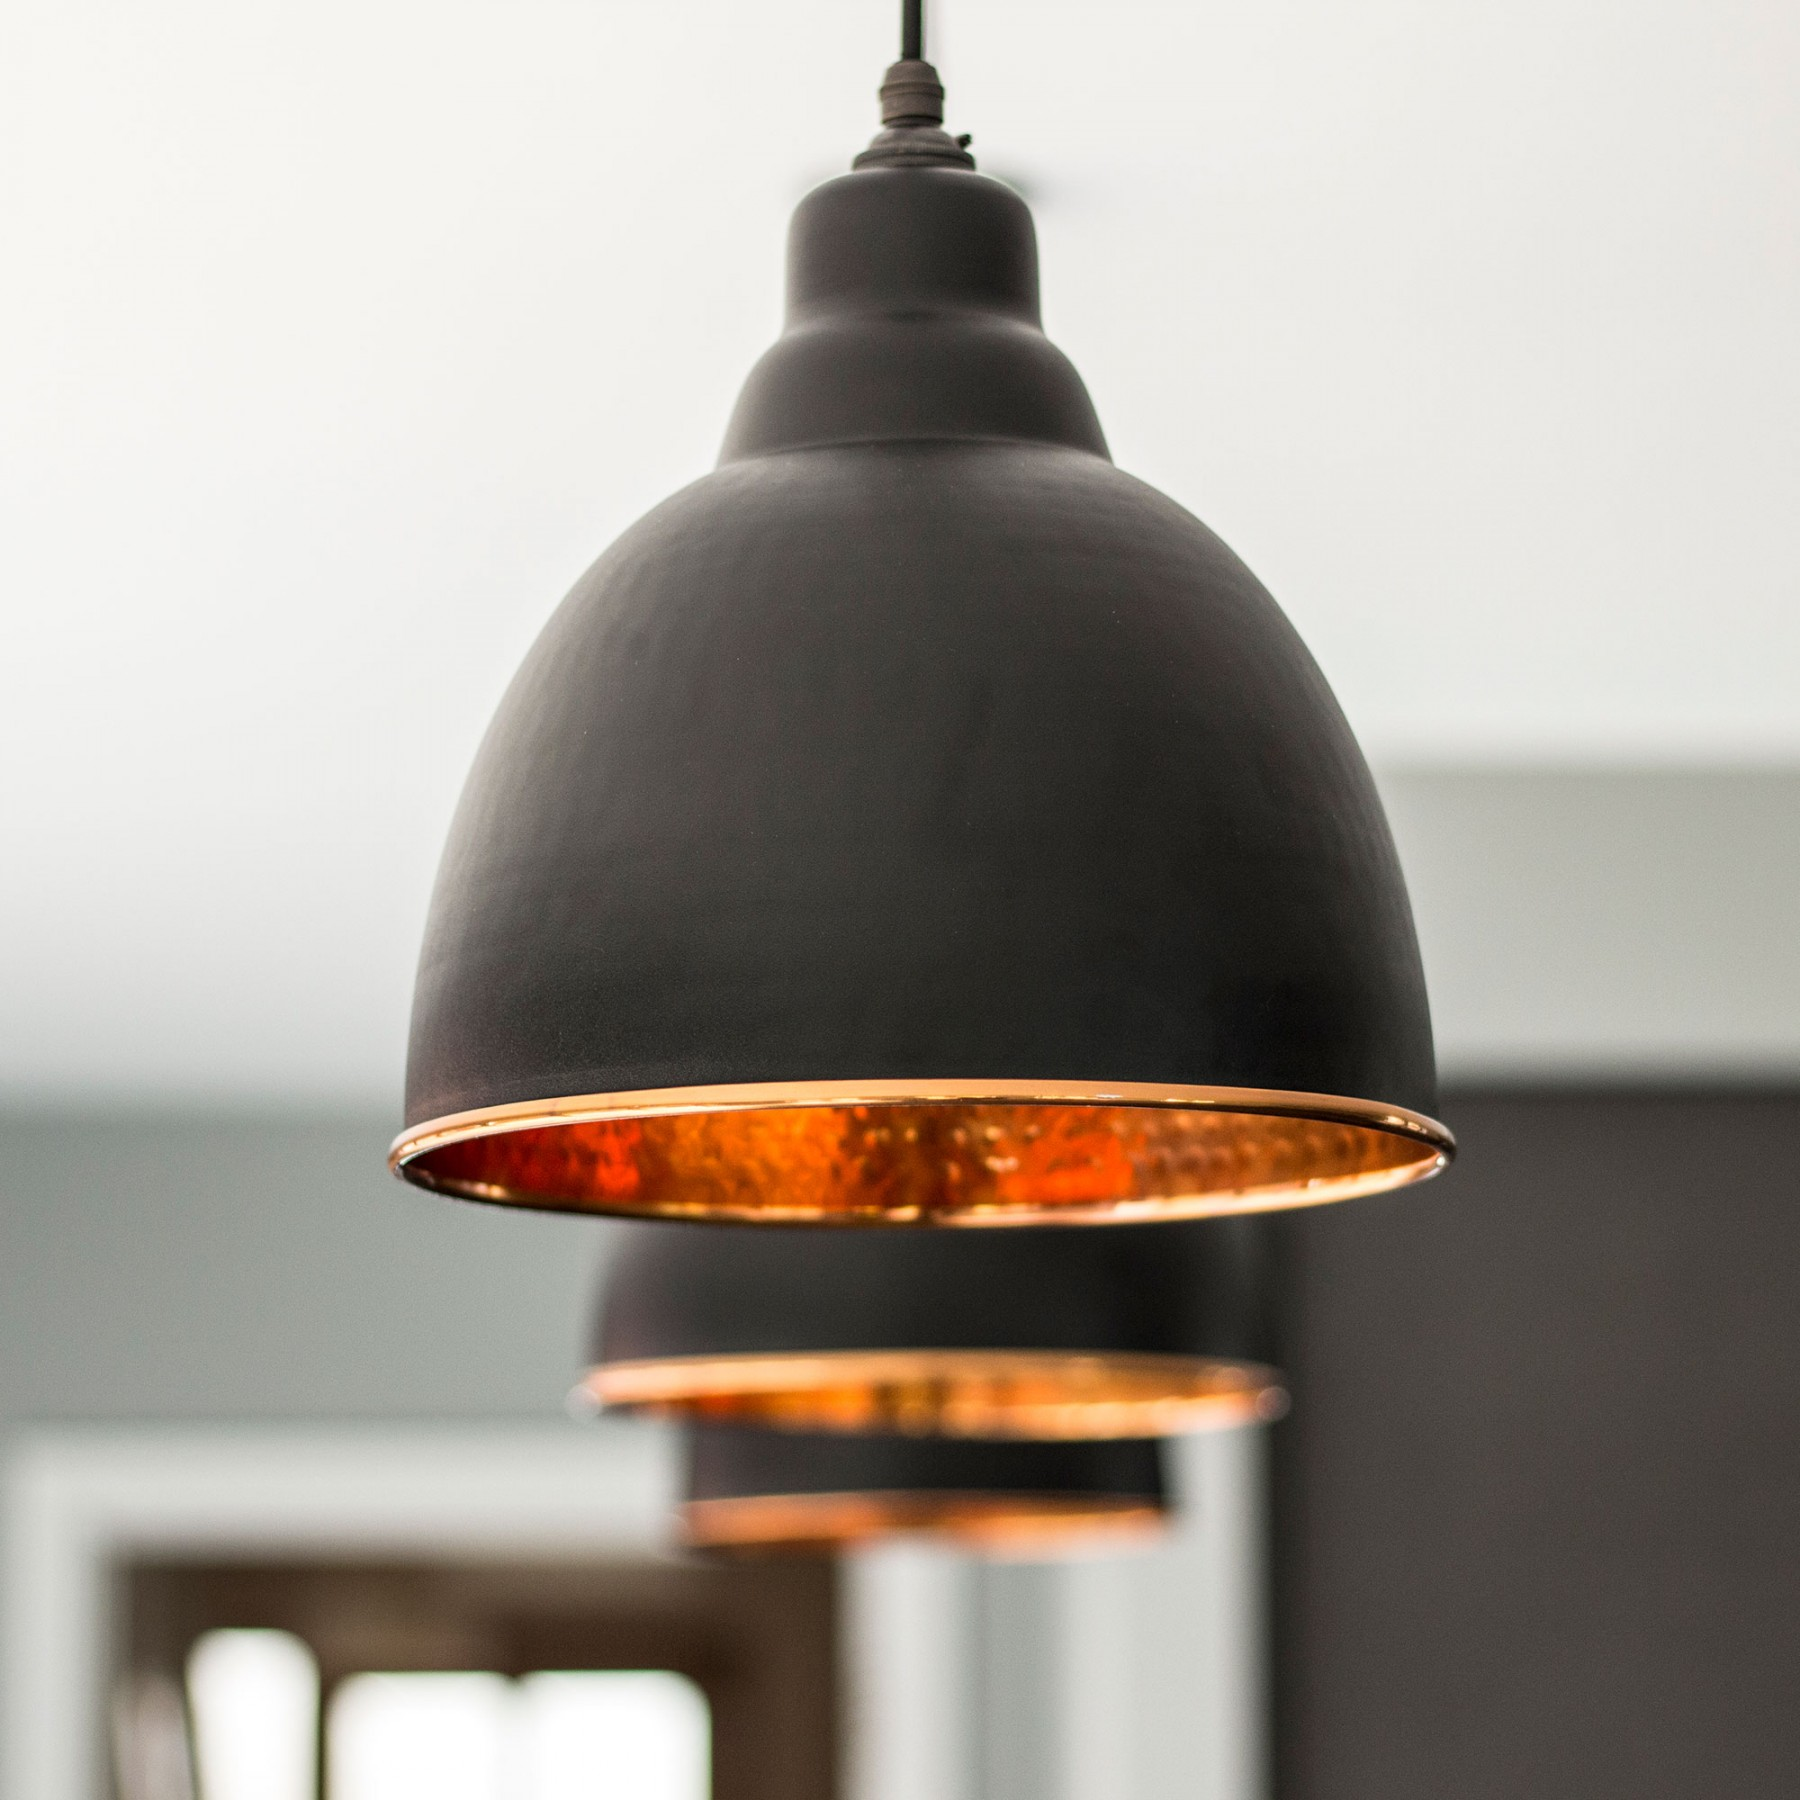 Copper Room Decor Brindley Pendant Light In Black Amp Hammered Copper Period